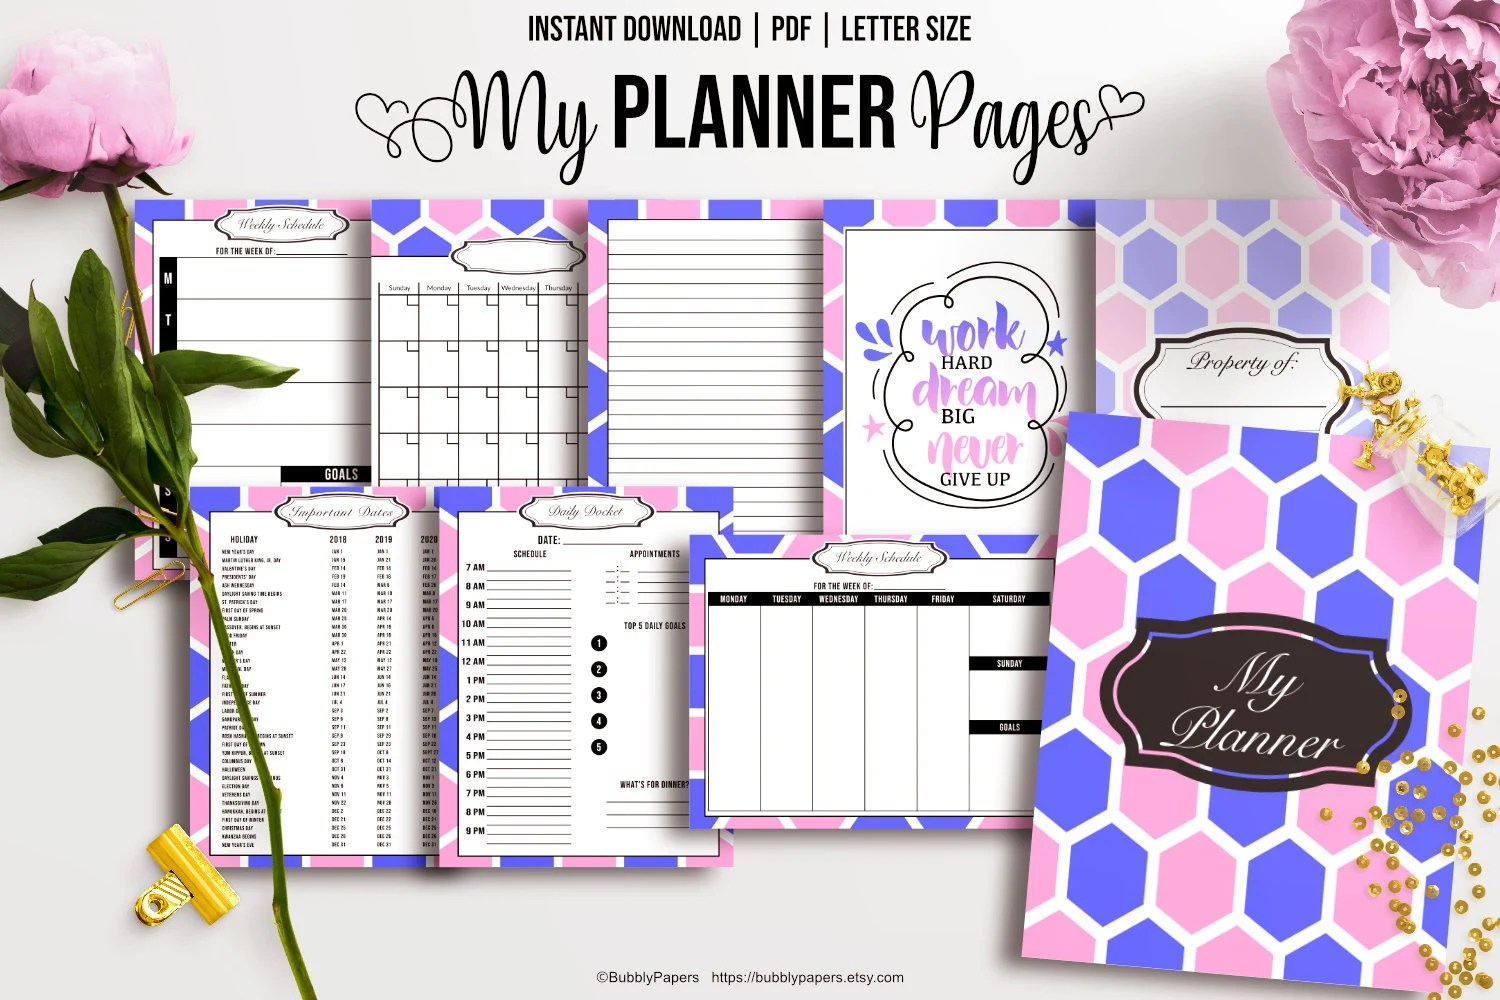 Printable Planner Pages Weekly Schedule Template Daily Planner Etsy